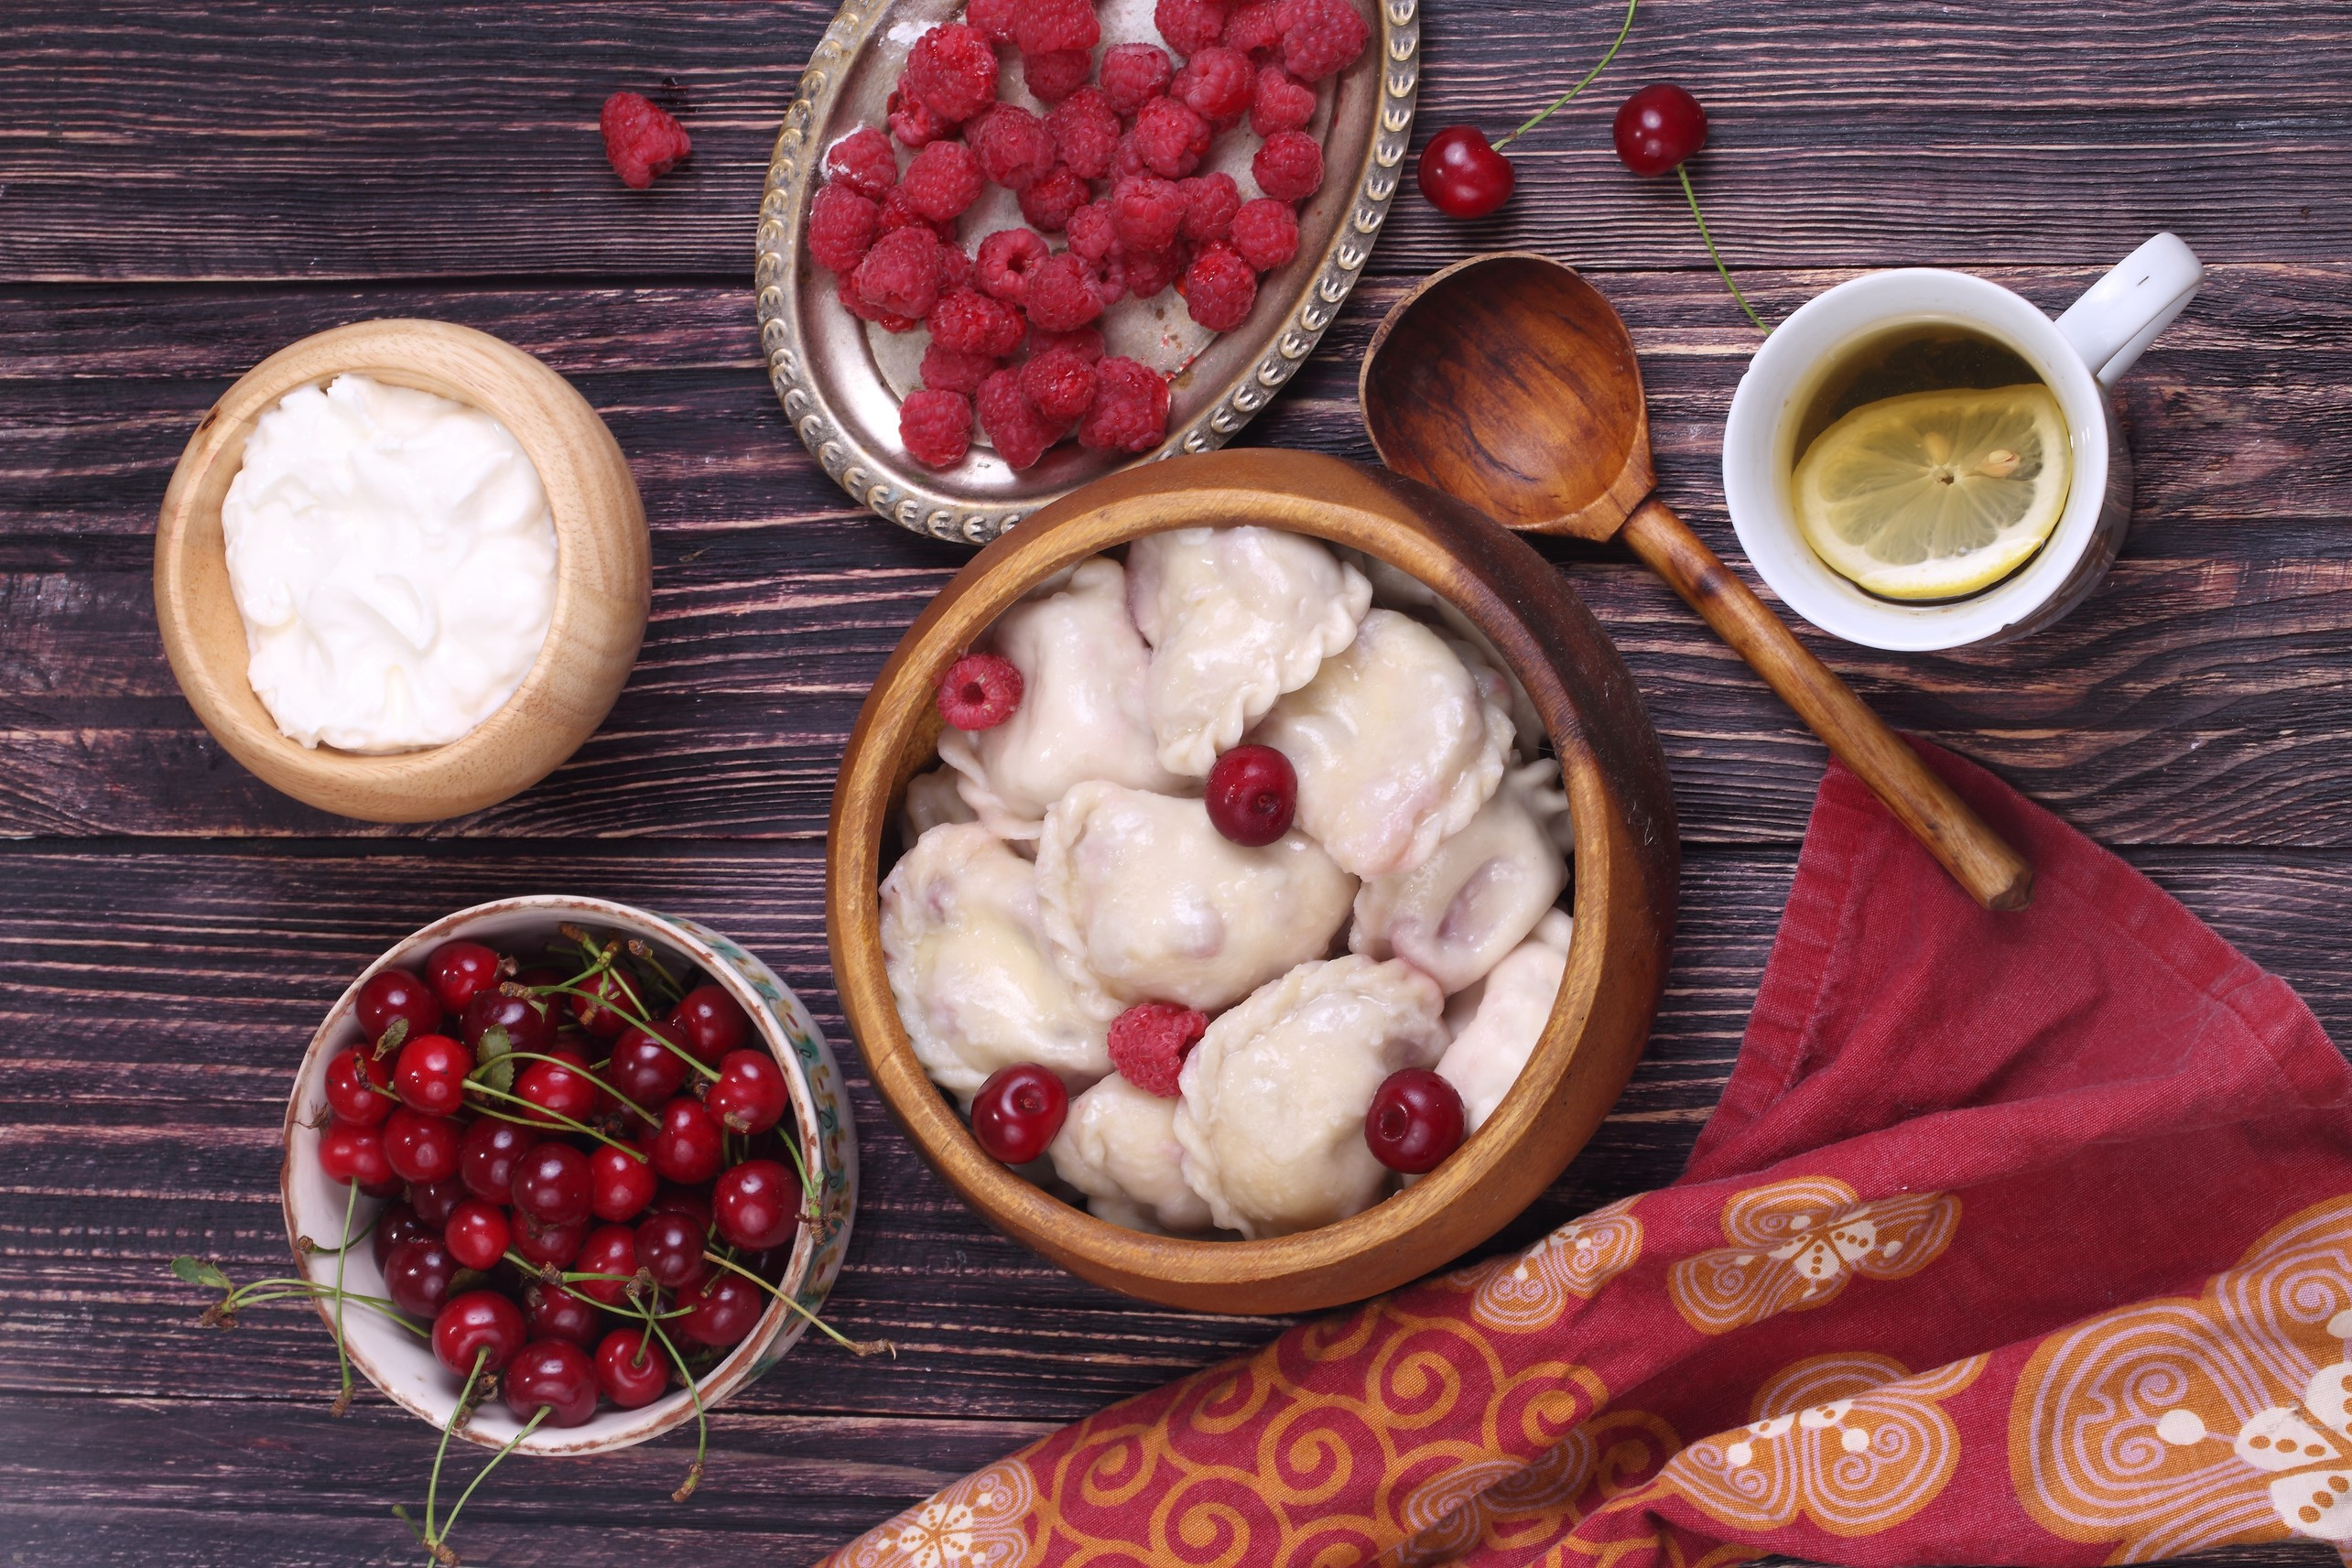 Sweet cherry dumplings (vareniki) with Vladimir cherries, raspberry and sour cream.